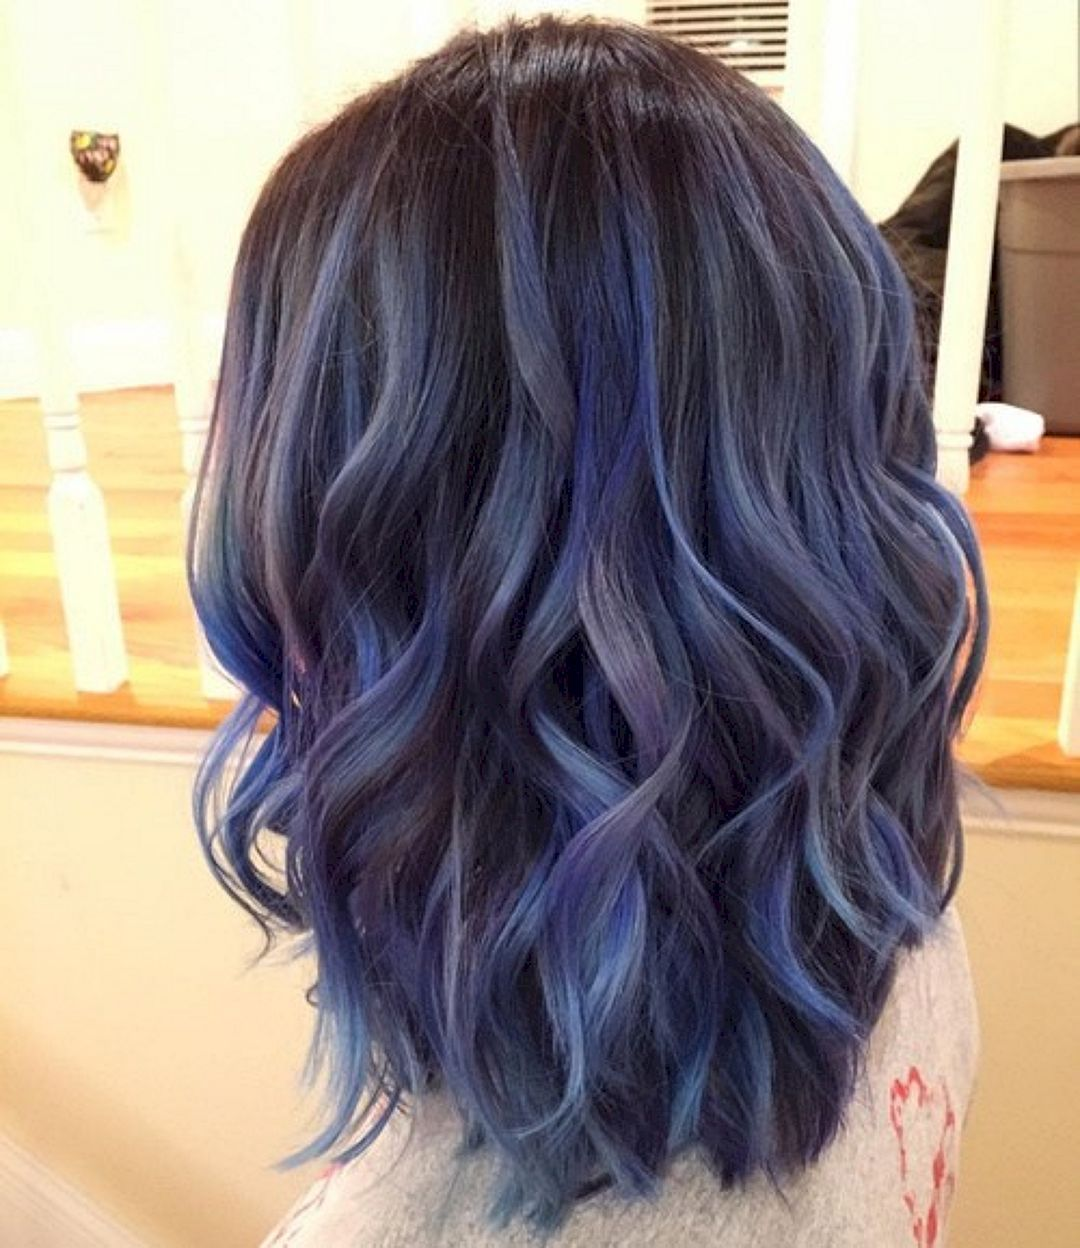 Dyed Hairstyles Stunning 45 Best And Stunning Dyed Hair Ideas For Brunettes  Brunettes